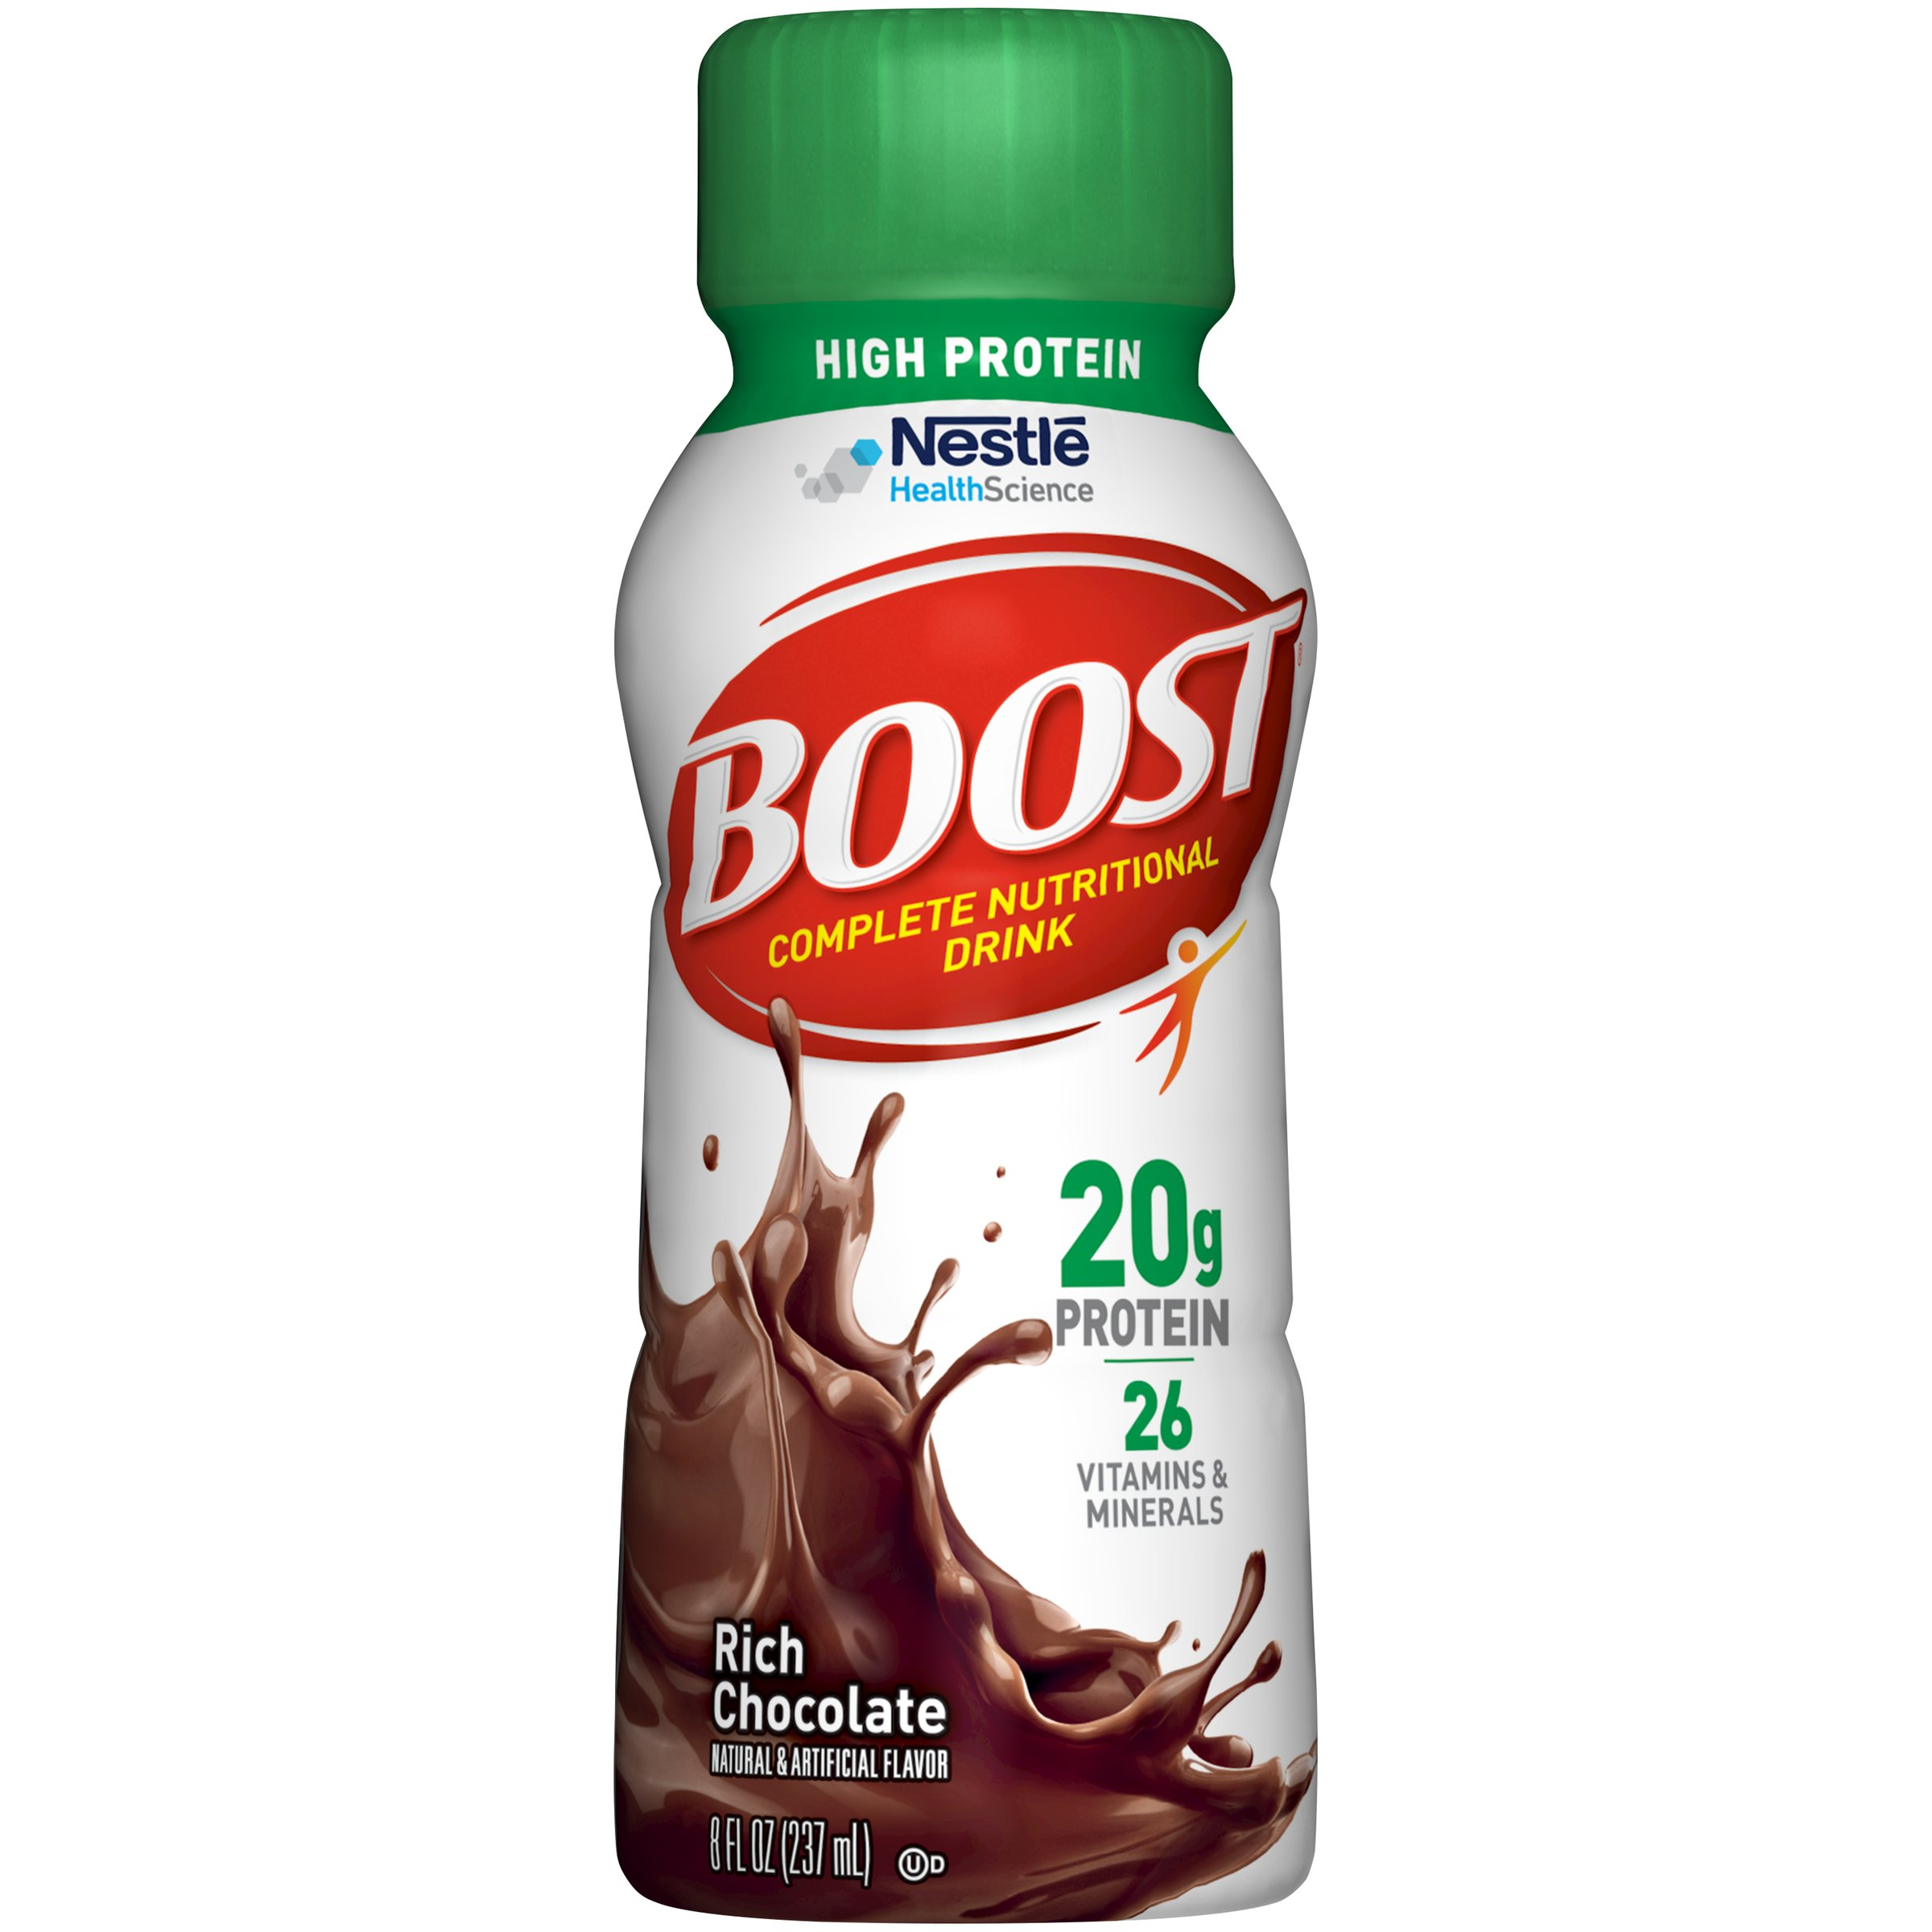 Boost High Protein Complete Nutritional Drink, Rich Chocolate, 8 Ounce Bottle (Pack of 24) 20 Grams Protein